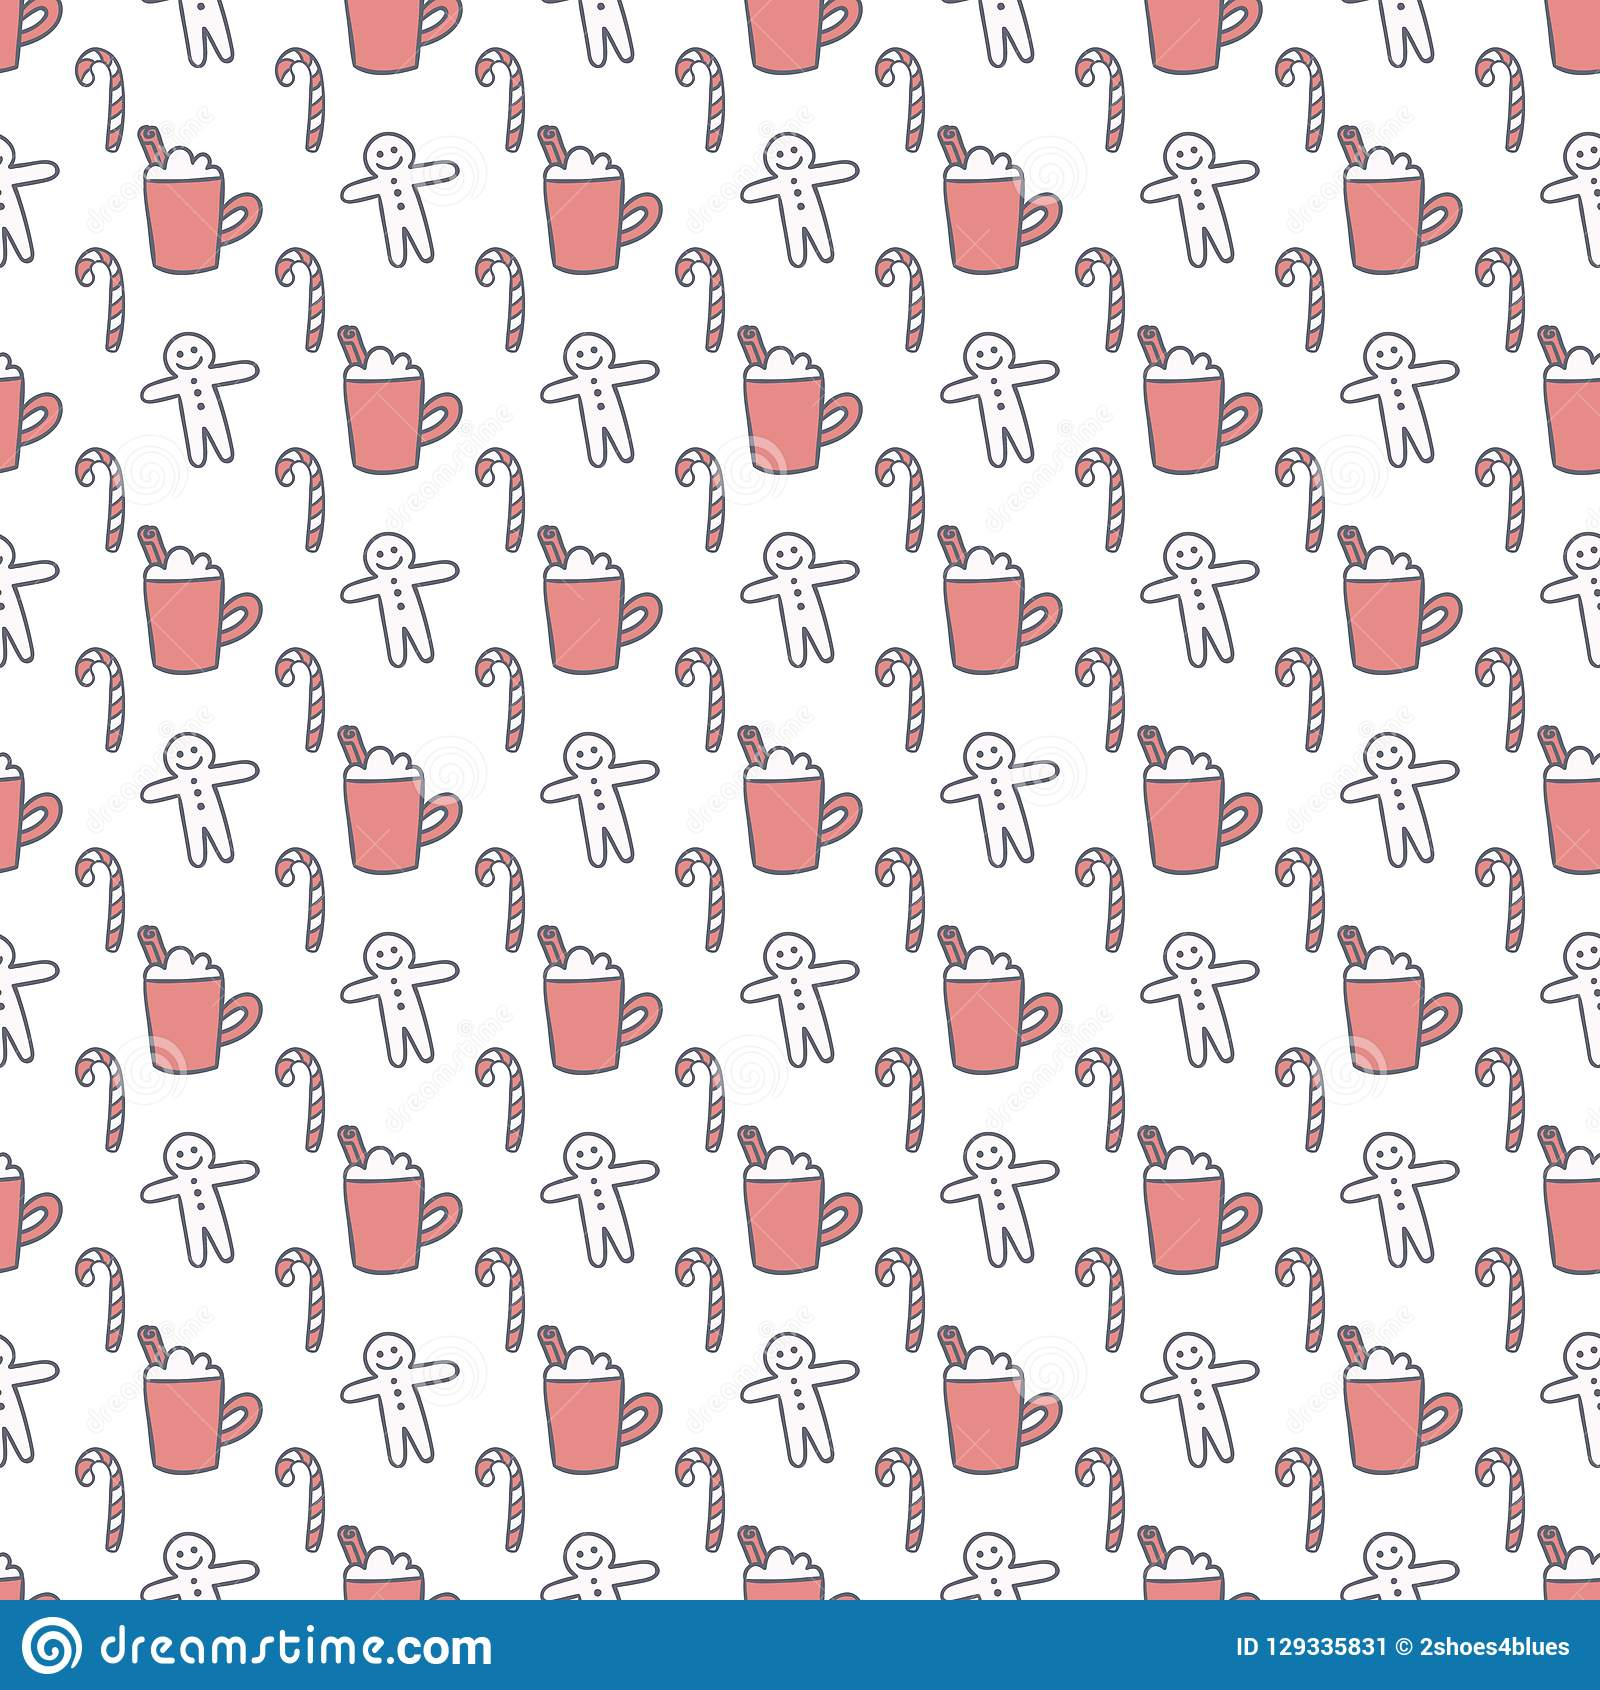 Christmas delights vector seamless pattern. Winter holidays desserts simple gray and pink background